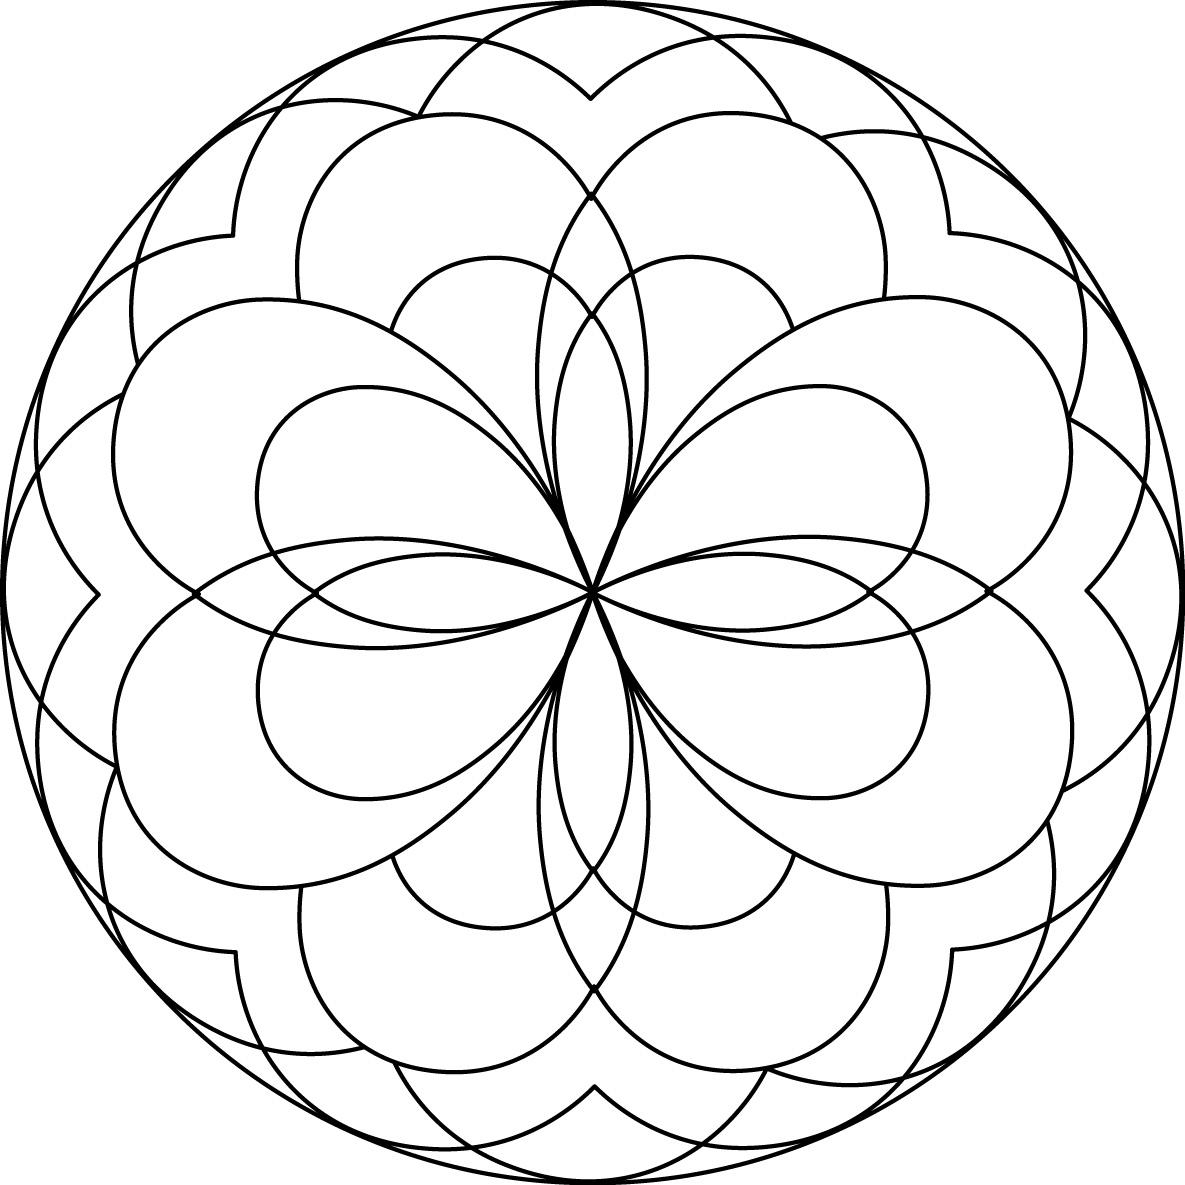 1185x1185 Awesome Mandalas For Children Free Coloring Pages Download